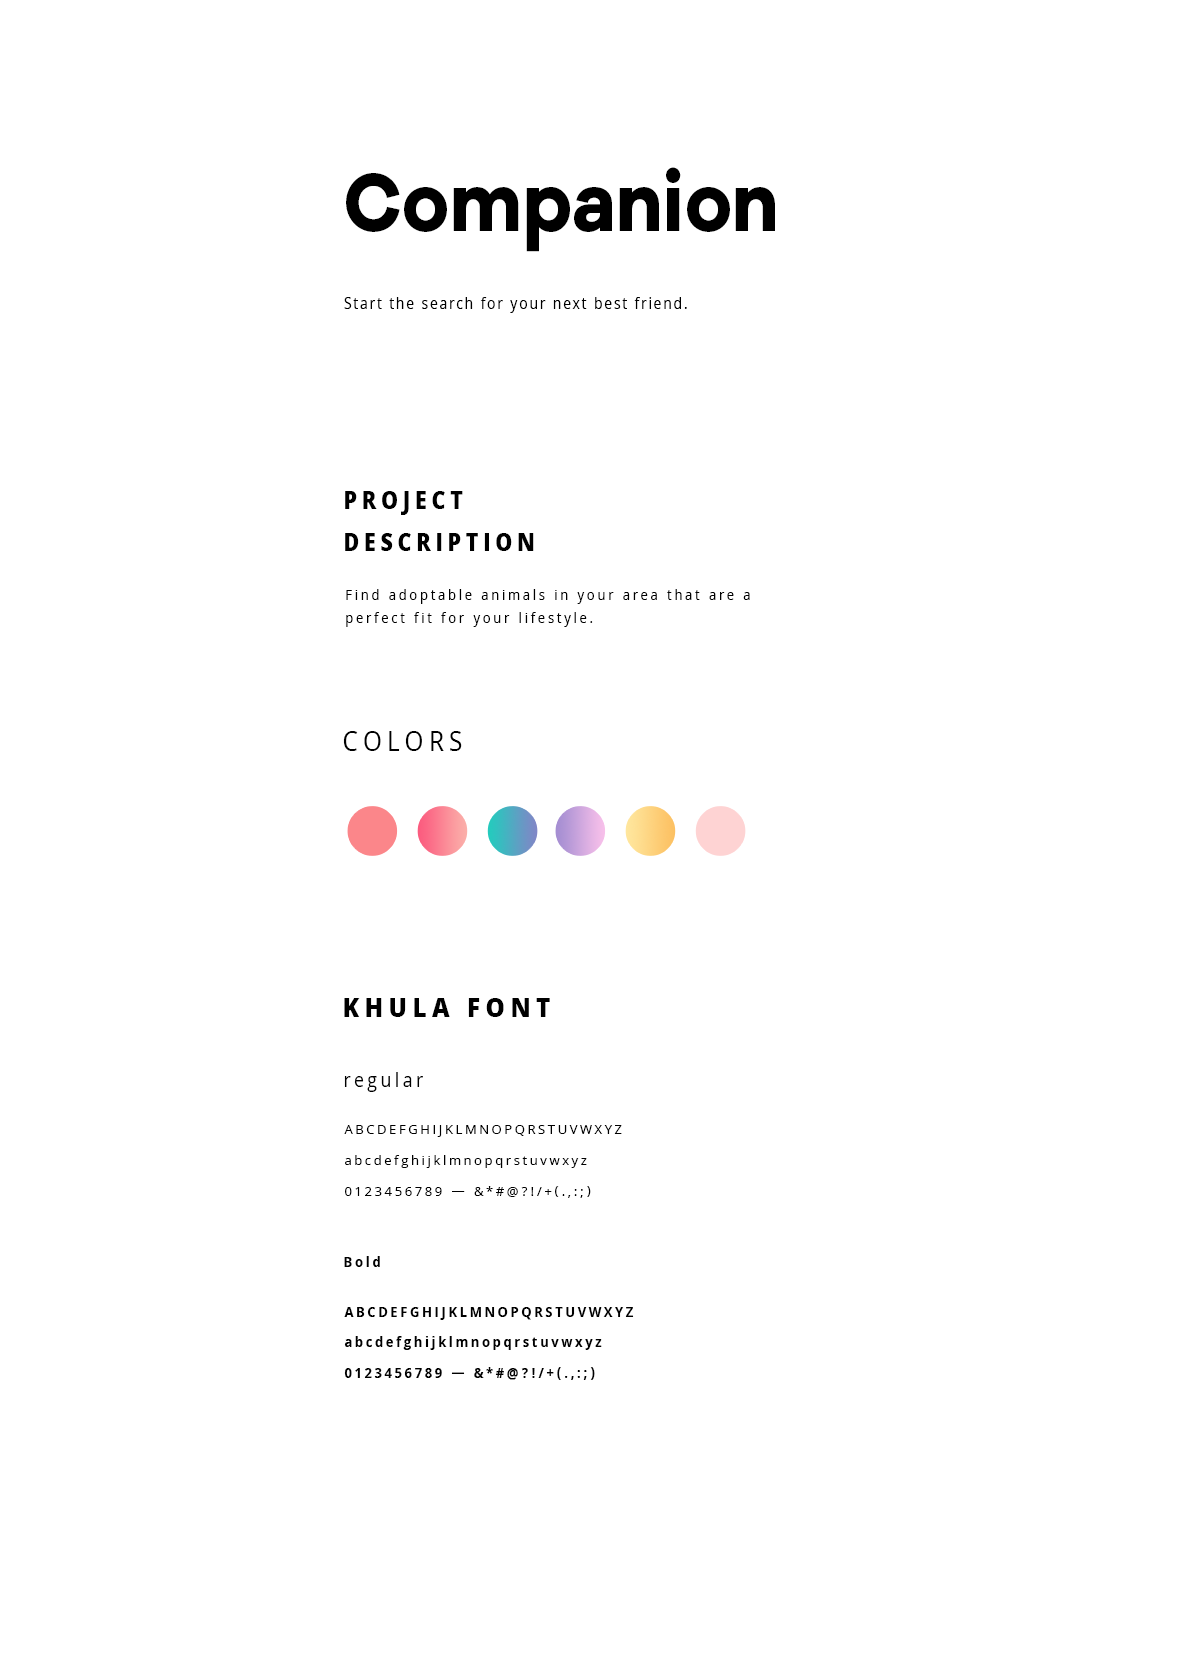 Styles - I wanted to give the app a whimsical feeling since searching for a pet should be an overall fun experience. To achieve this,I used a rounded title font (Galano Grotesk) and mostly pink when emphasis is needed. Bright gradients serve as accents to emphasize different traits displayed in tags.